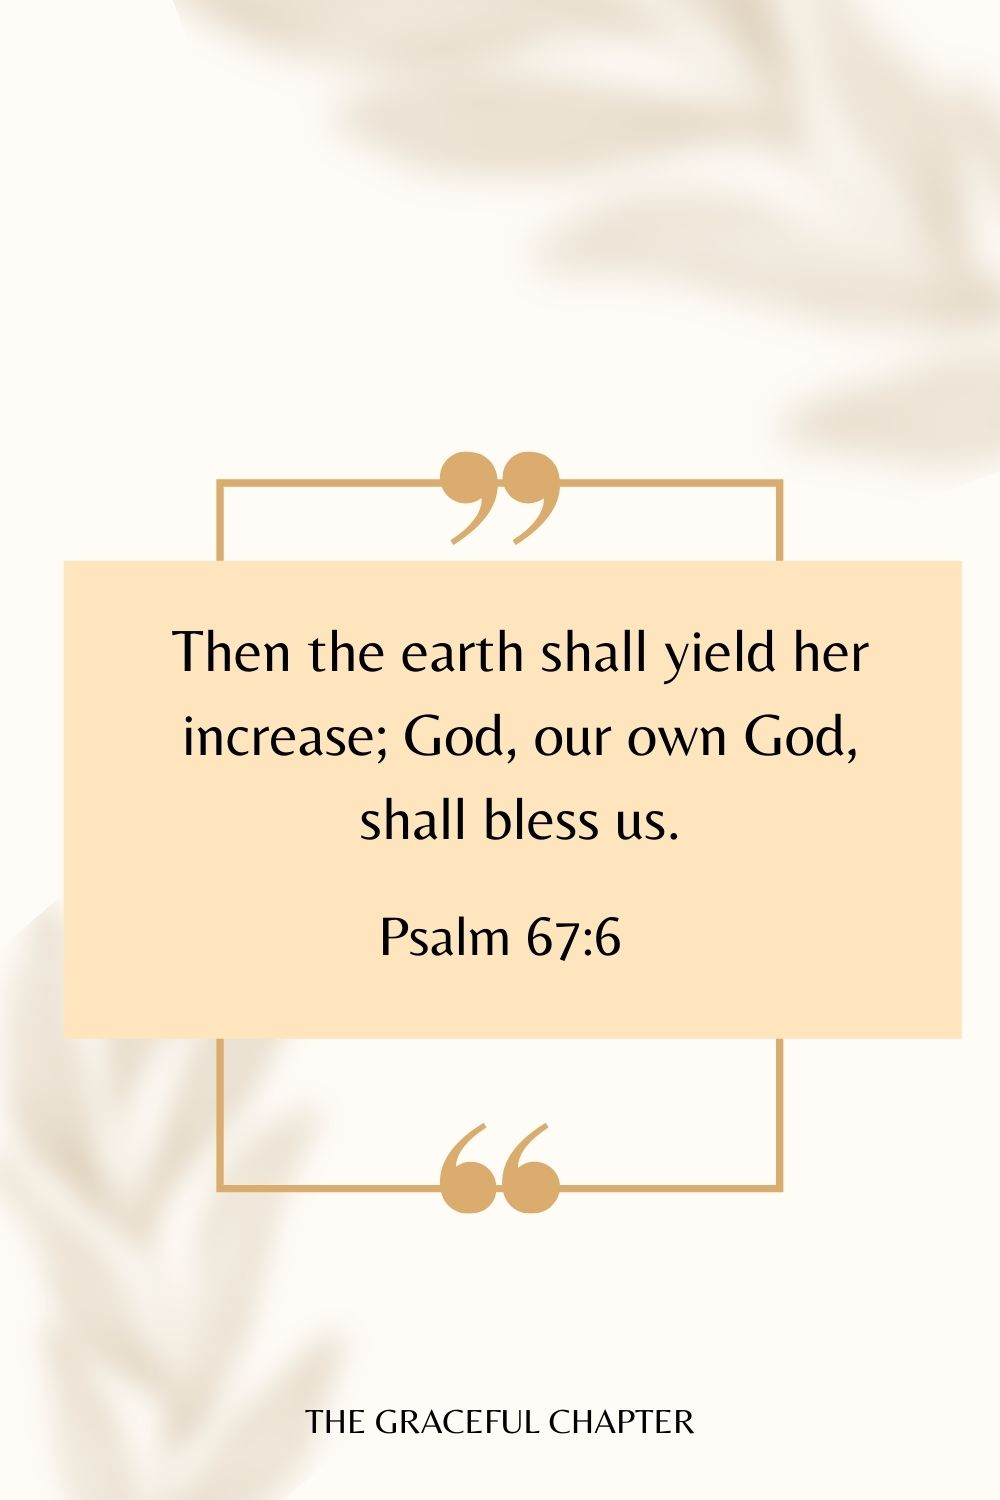 Then the earth shall yield her increase; God, our own God, shall bless us. Psalm 67:6